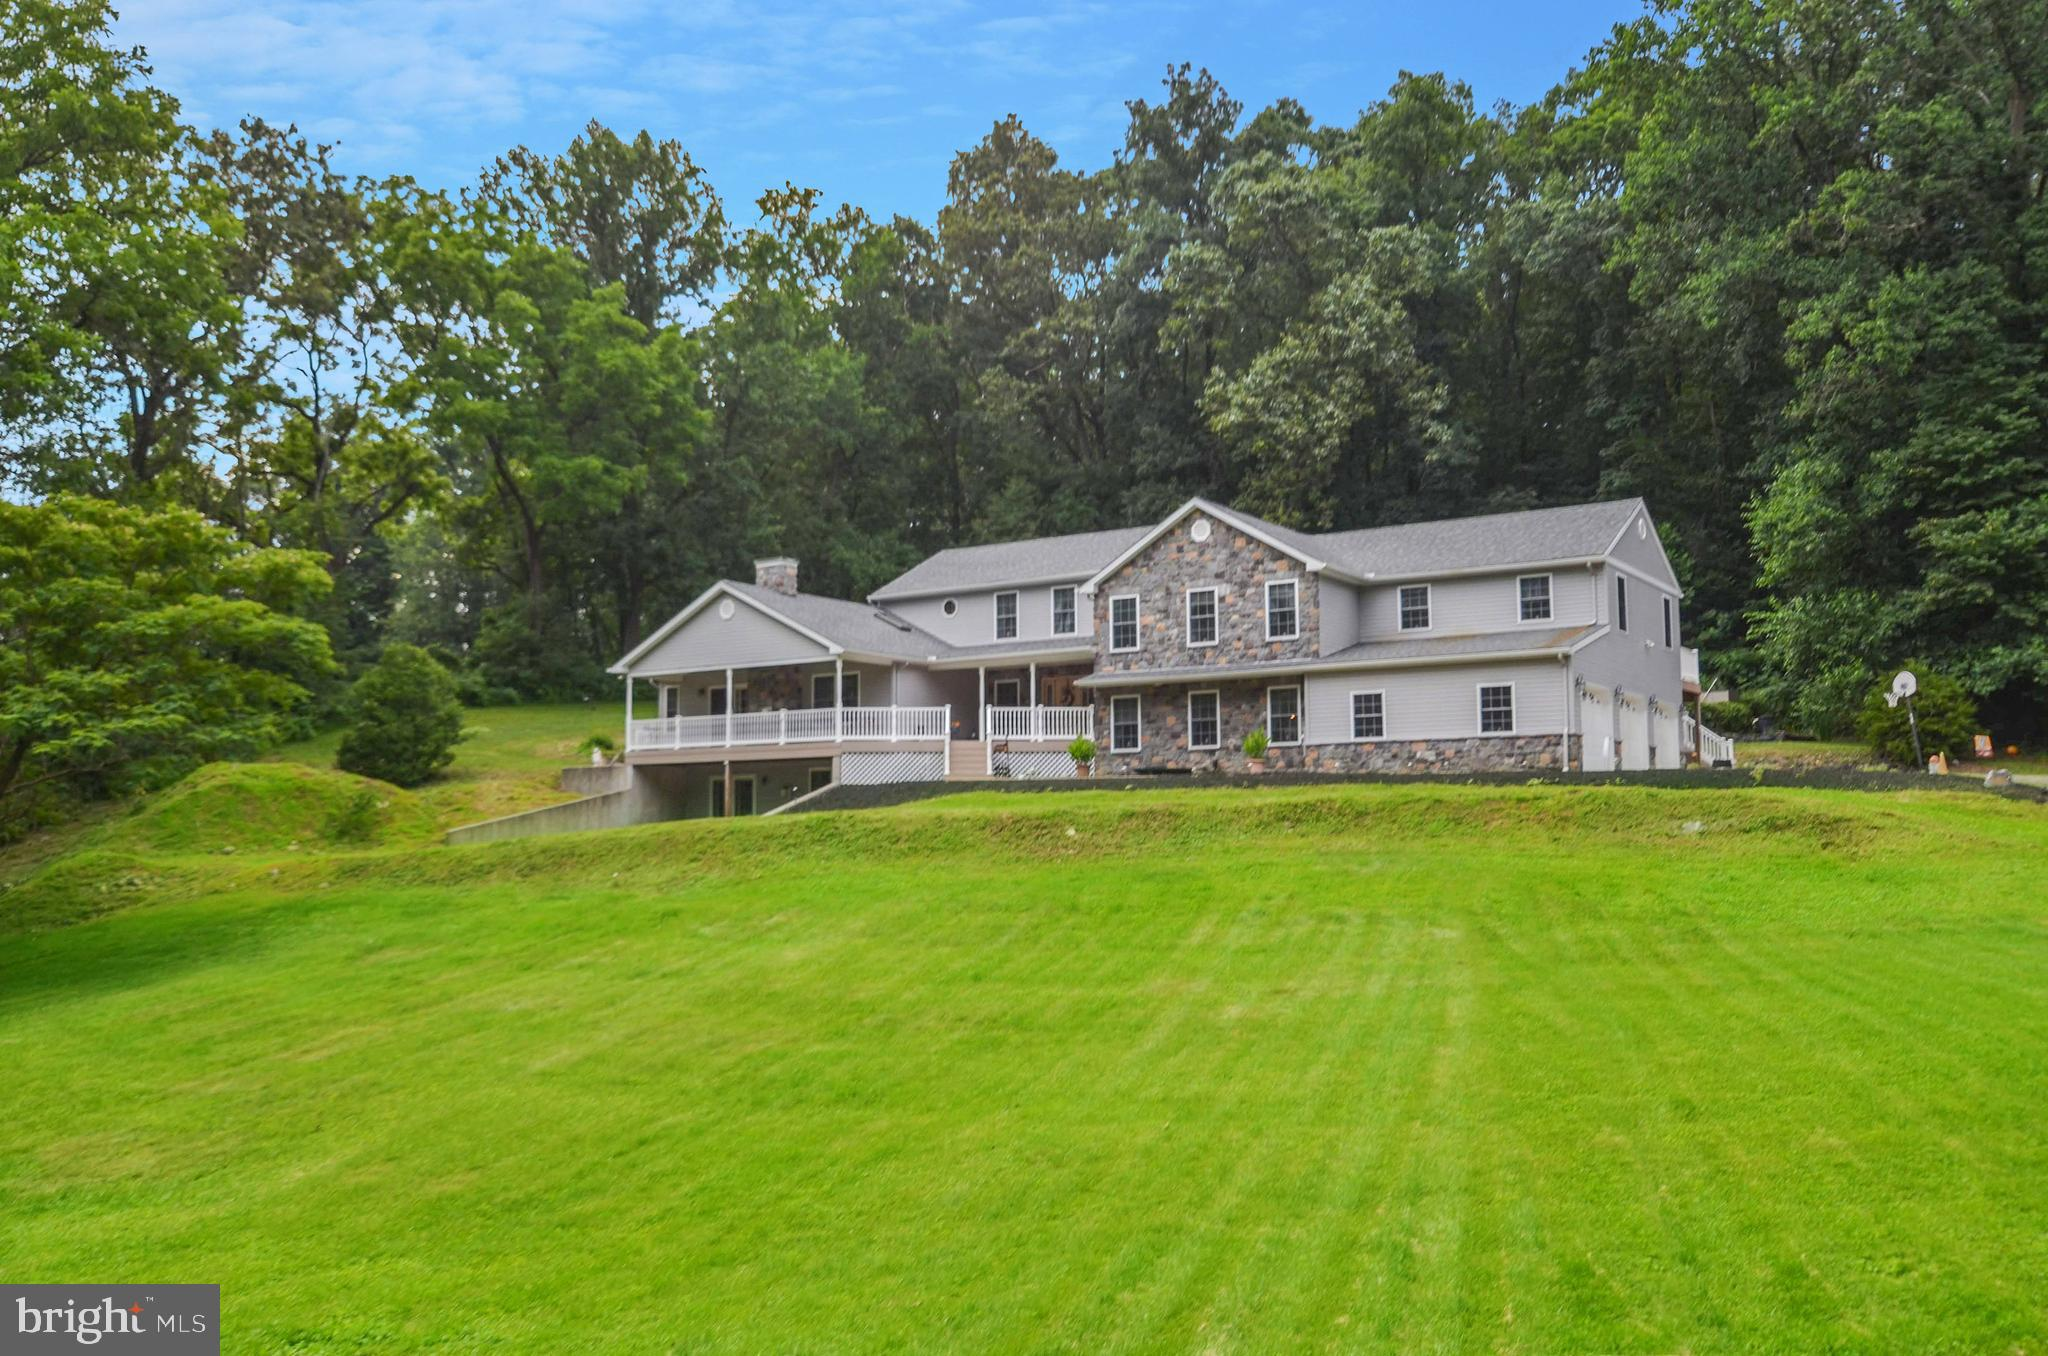 7920 CHESTNUT HILL CHURCH ROAD, COOPERSBURG, PA 18036